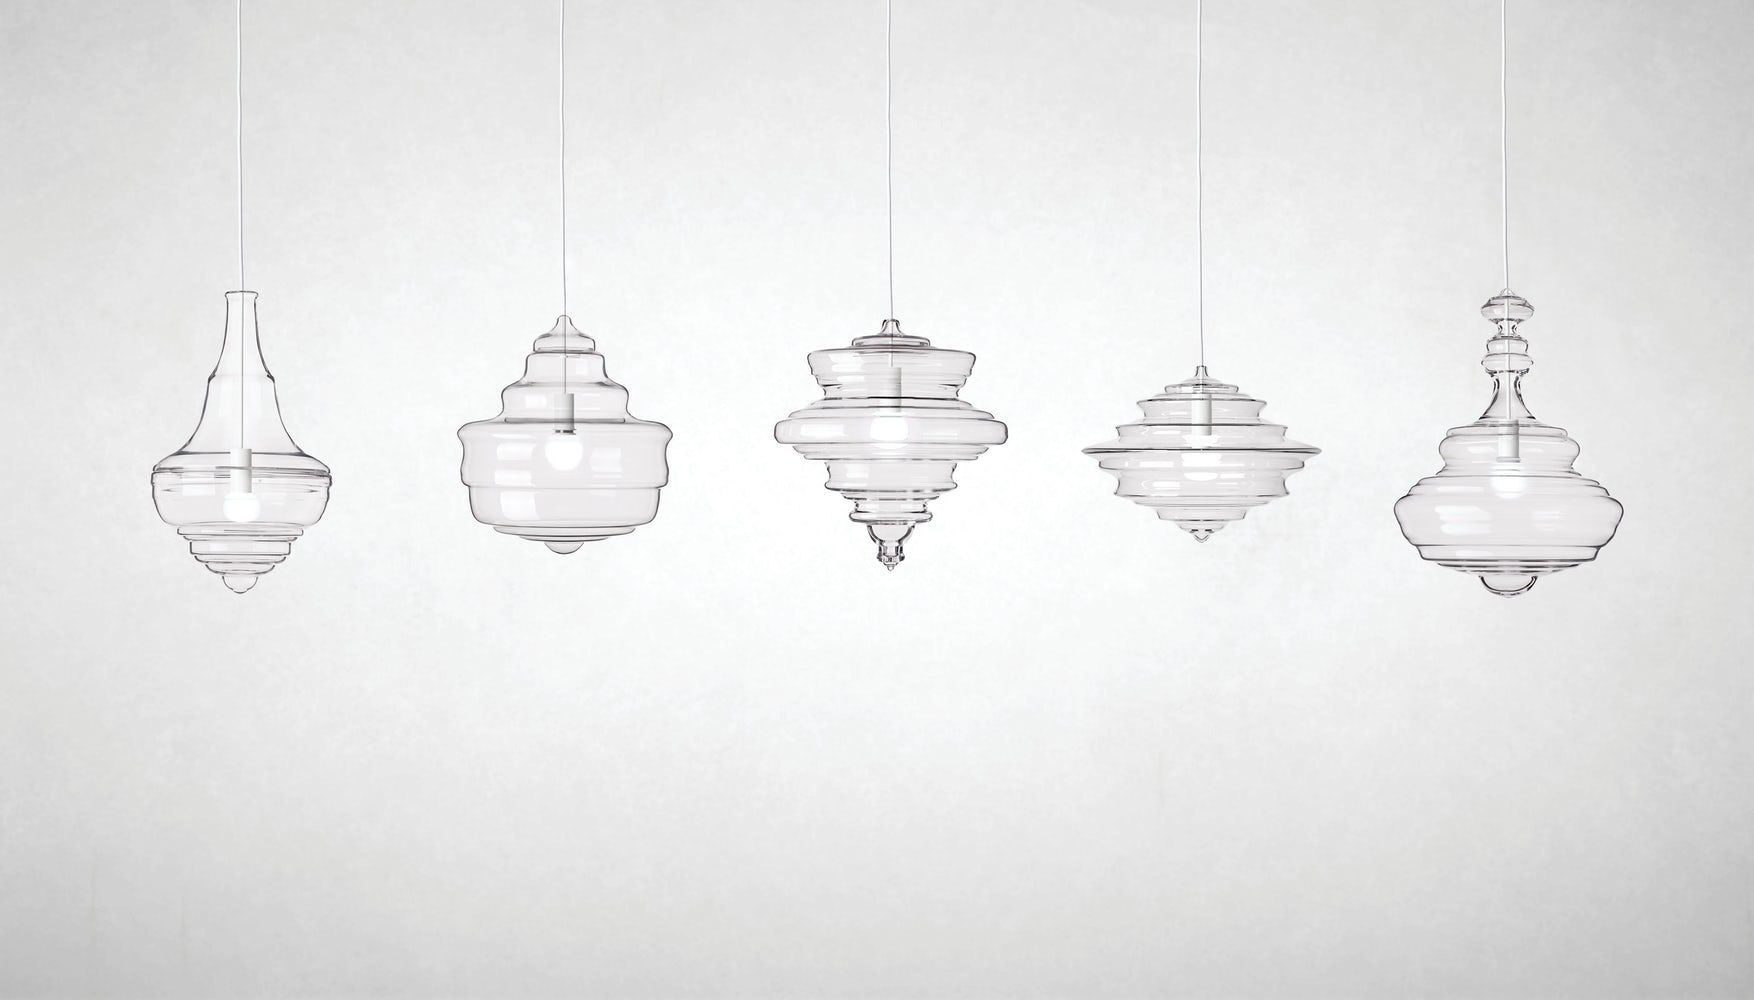 A series of similar-looking pendant lights, currently for sale at Design Within Reach